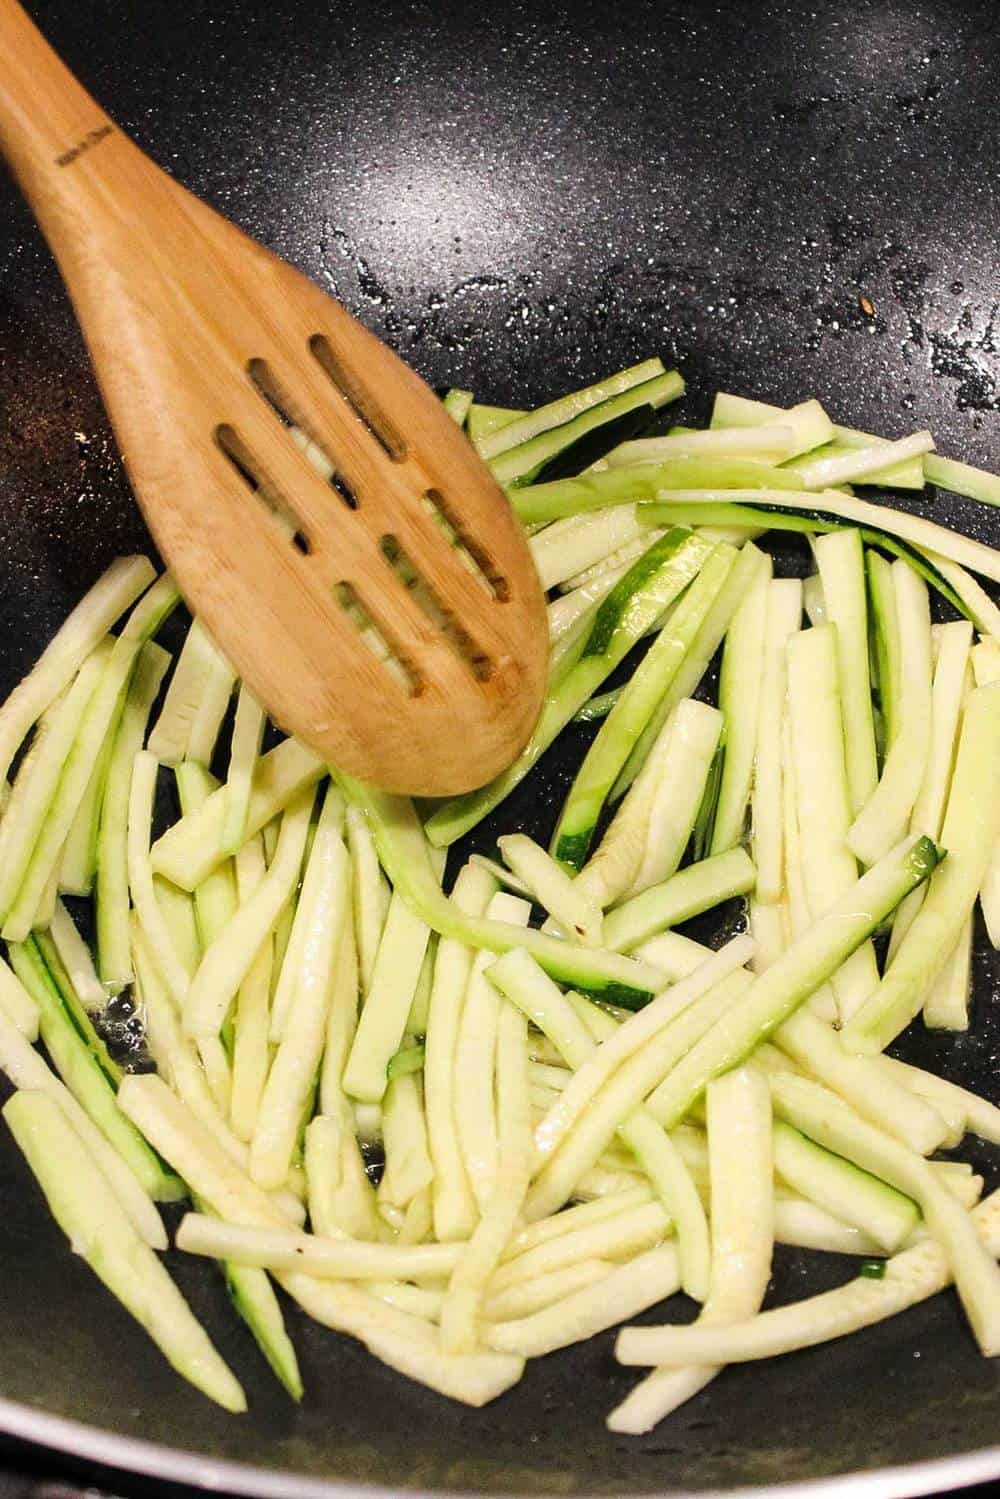 Shredded zucchini being stir fried in a wok for bibimbap